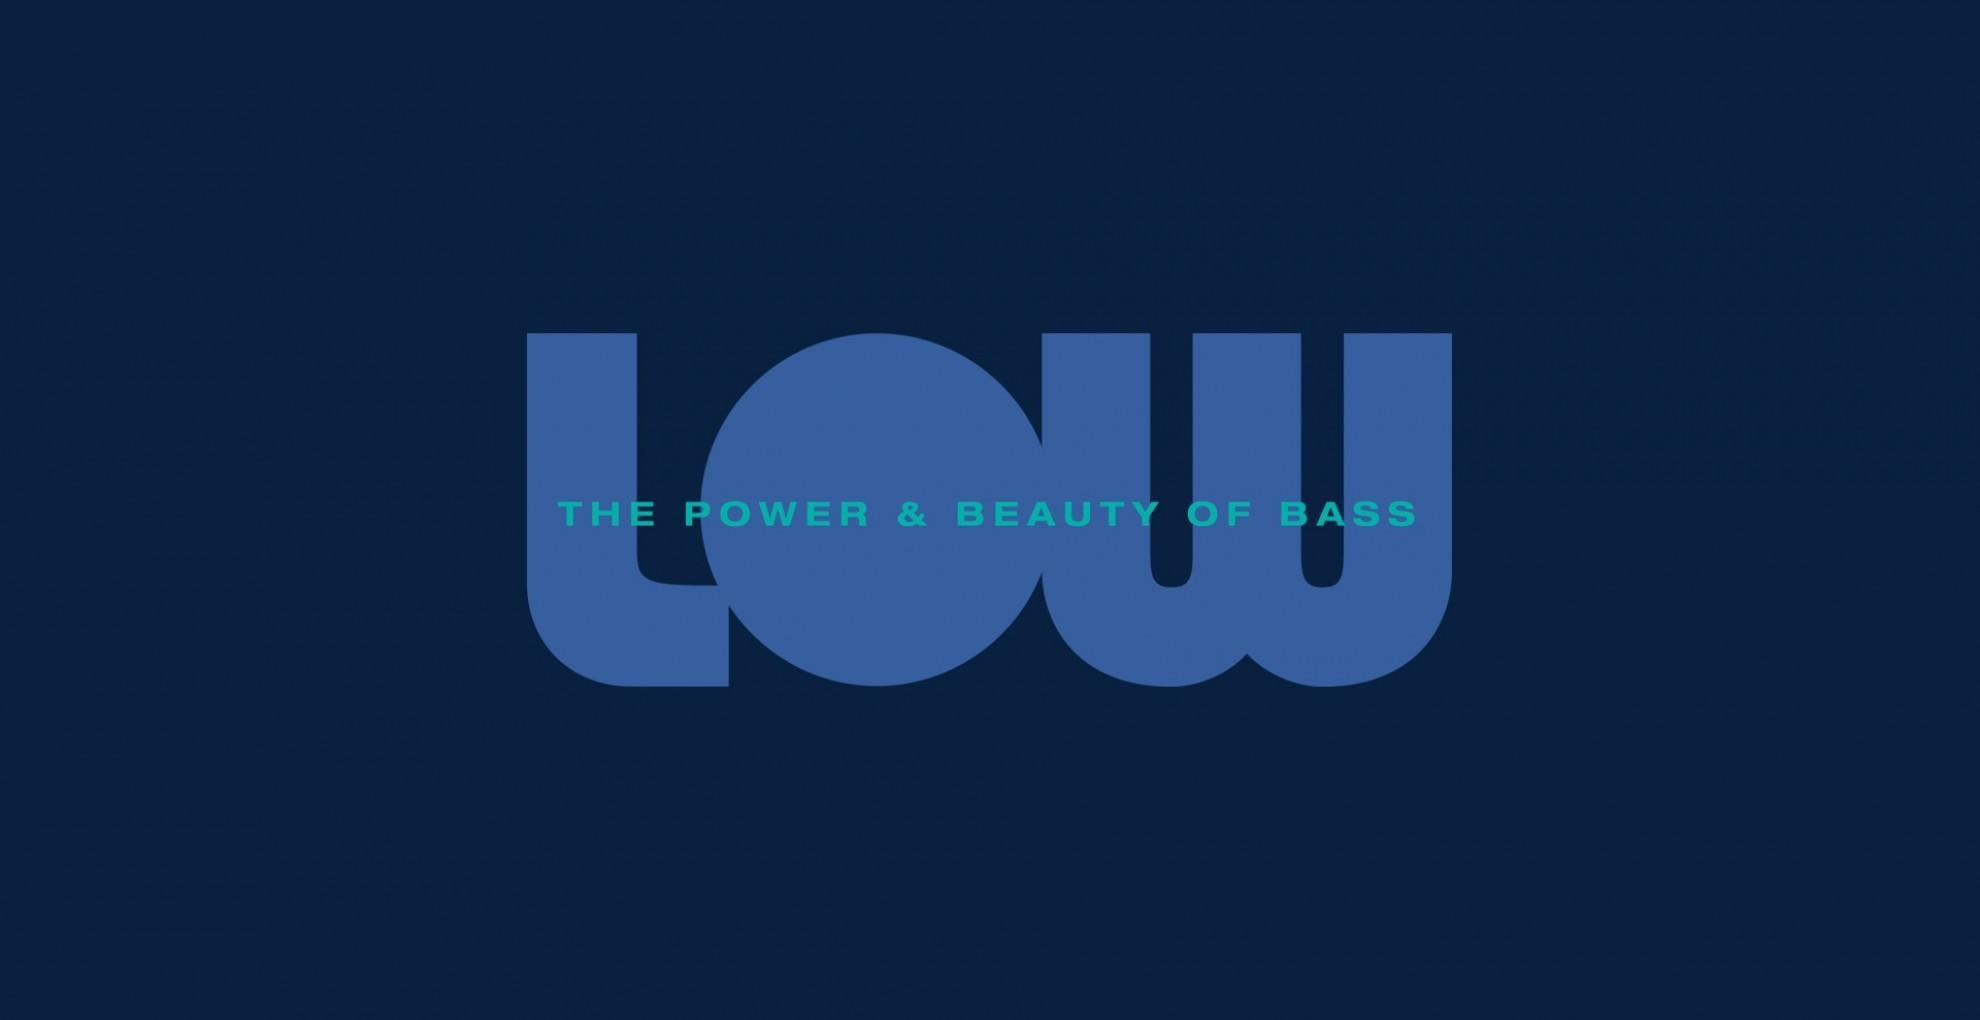 LOW: The Power & Beauty of Bass